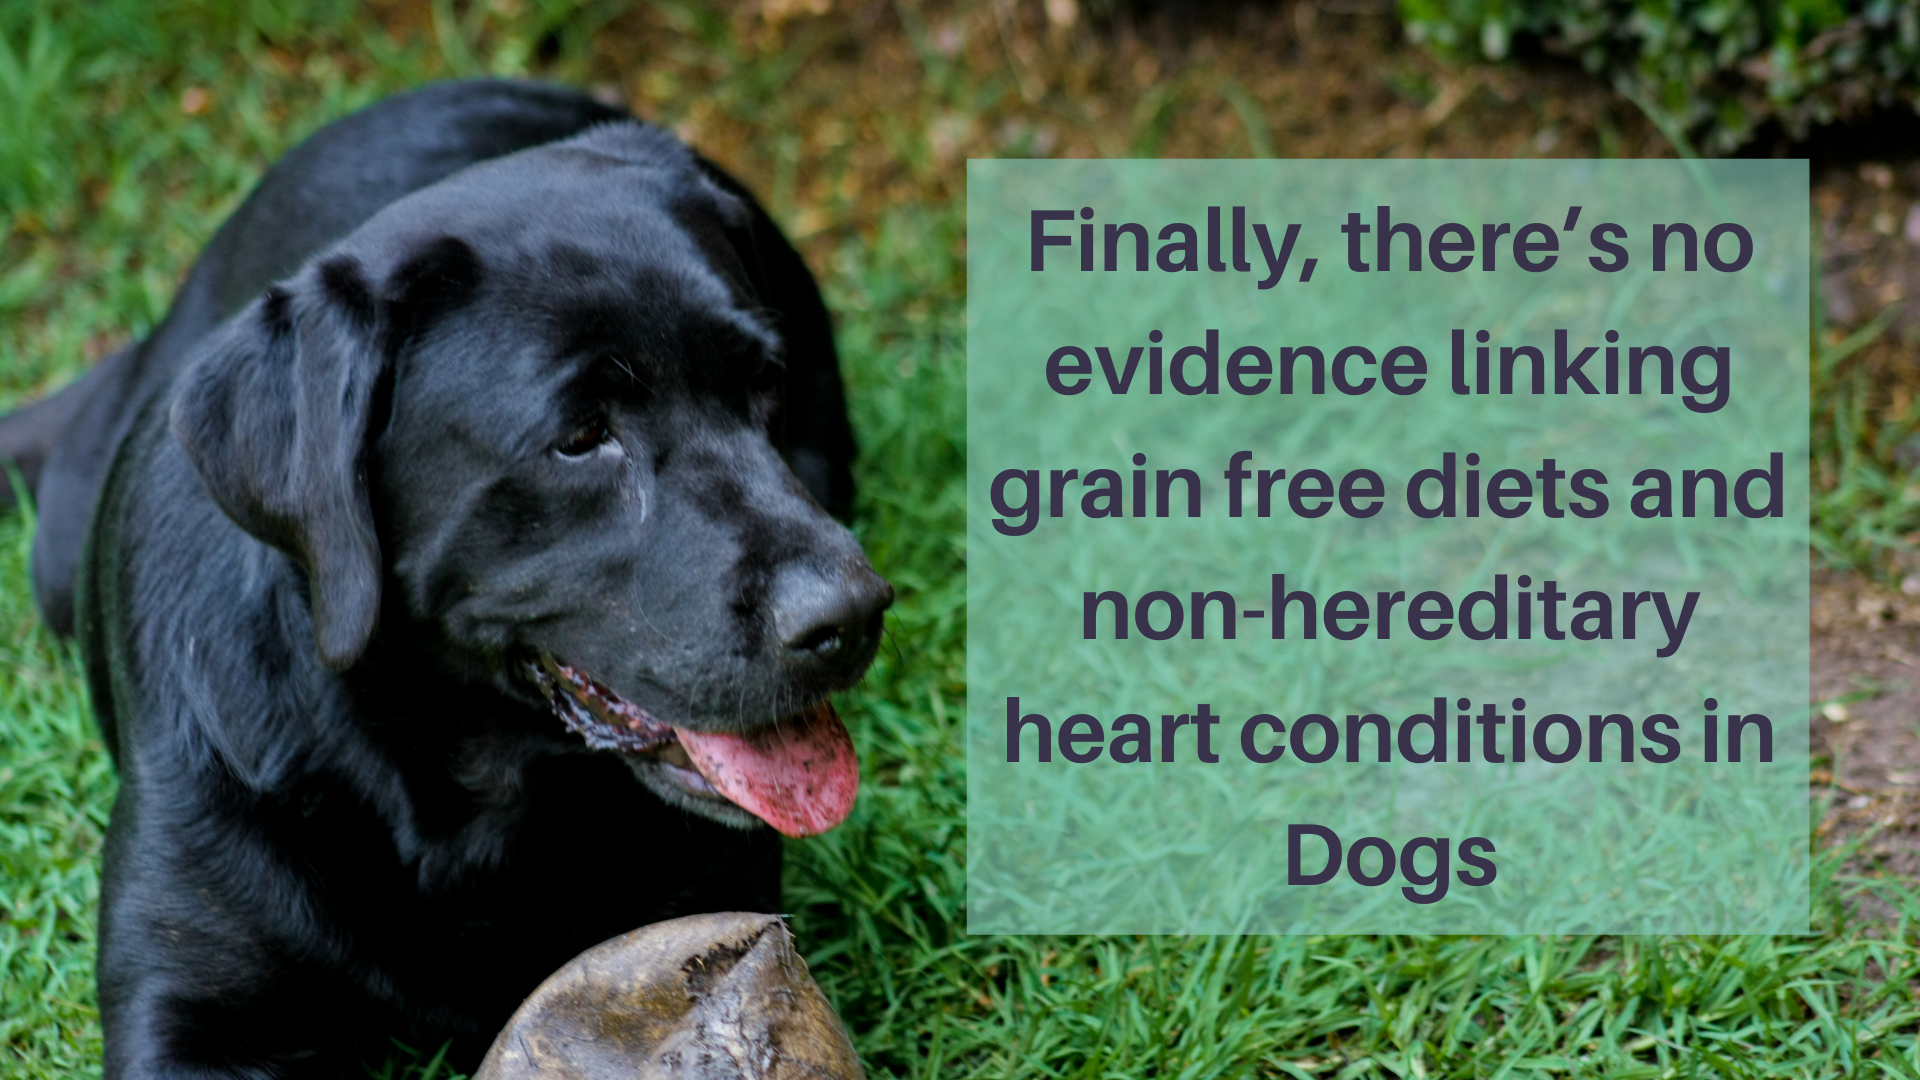 Finally, There's No Evidence Linking Grain-Free Diets And Non-Hereditary Heart Conditions In Dogs